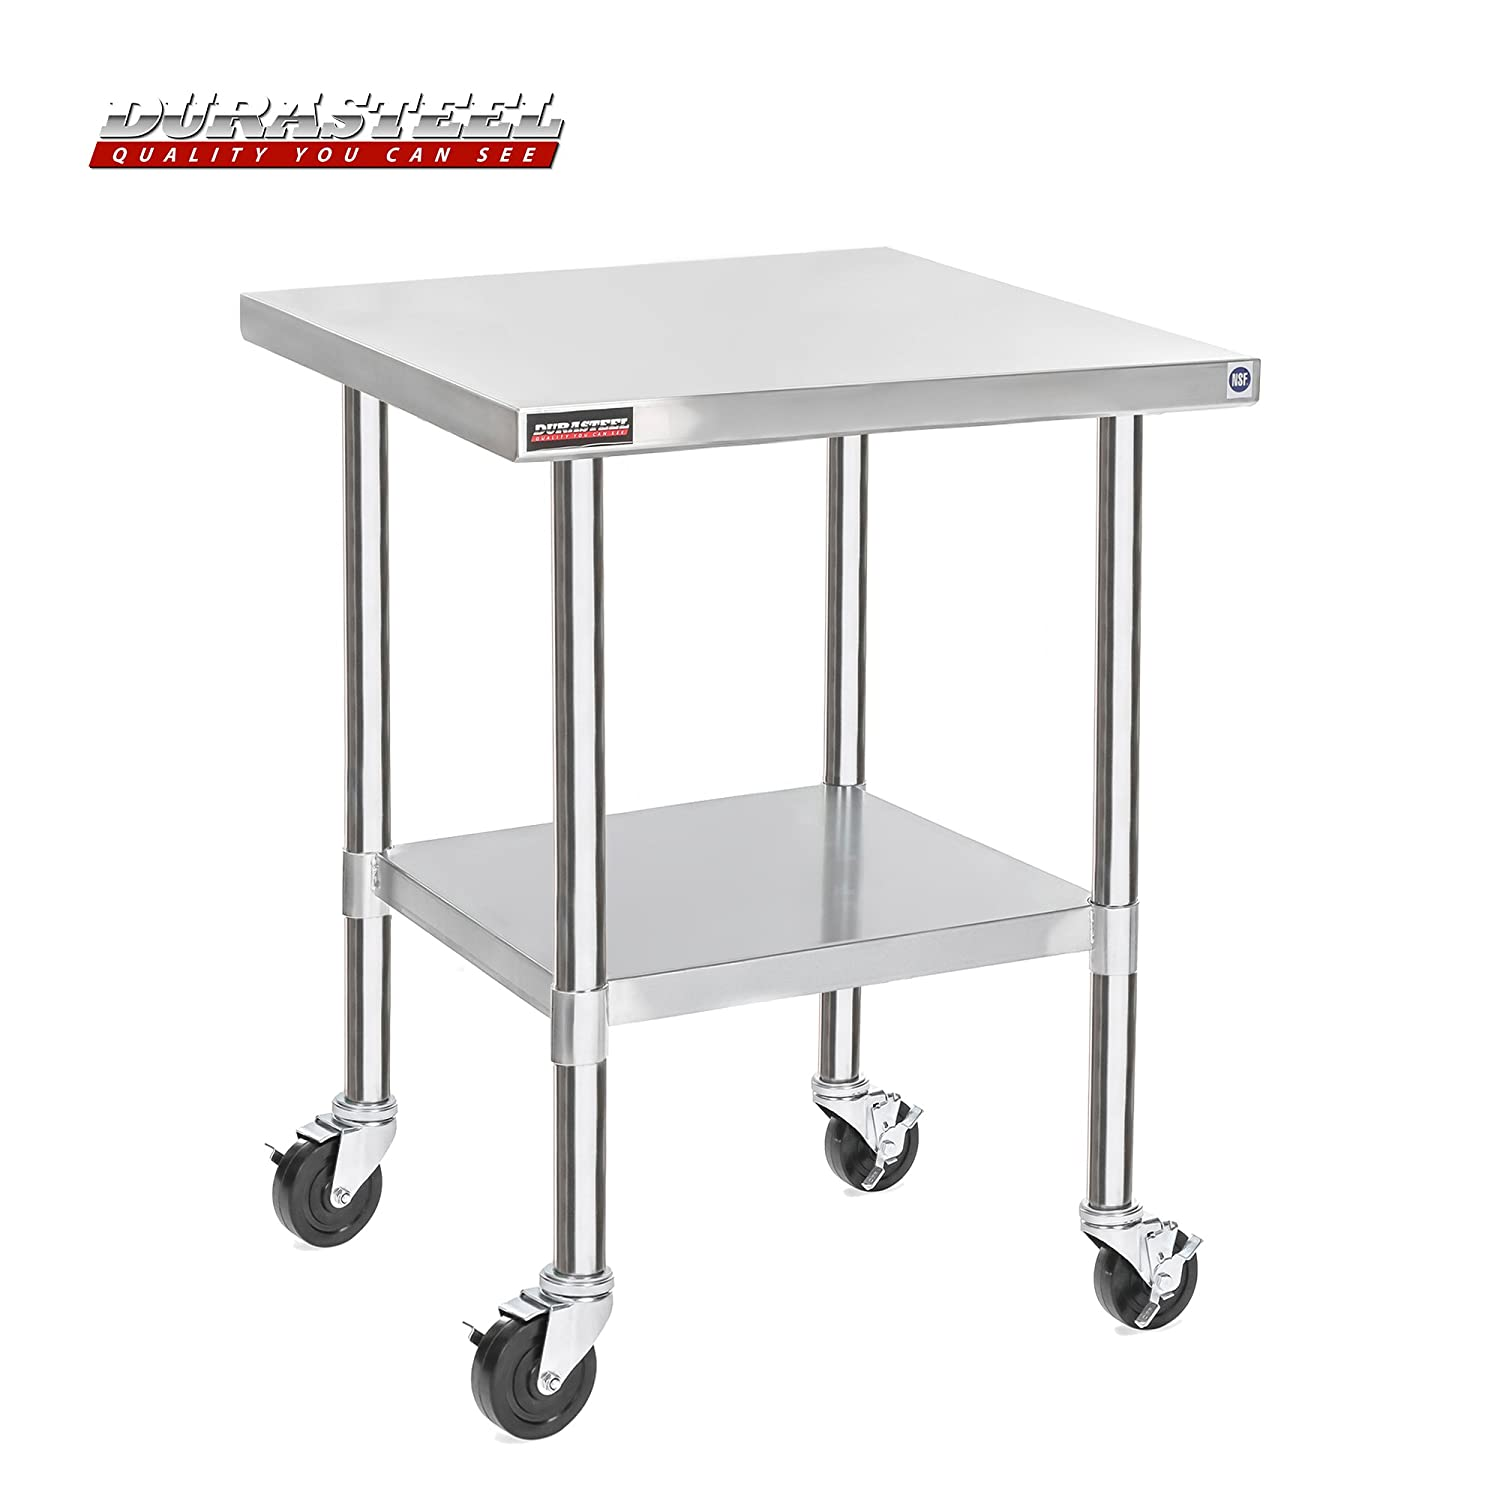 """DuraSteel Stainless Steel Work Table 30"""" x 30"""" x 34"""" Height w/ 4 Caster Wheels - Food Prep Commercial Grade Worktable - NSF Certified - Good for Restaurant, Business, Warehouse, Home, Kitchen, Garage"""